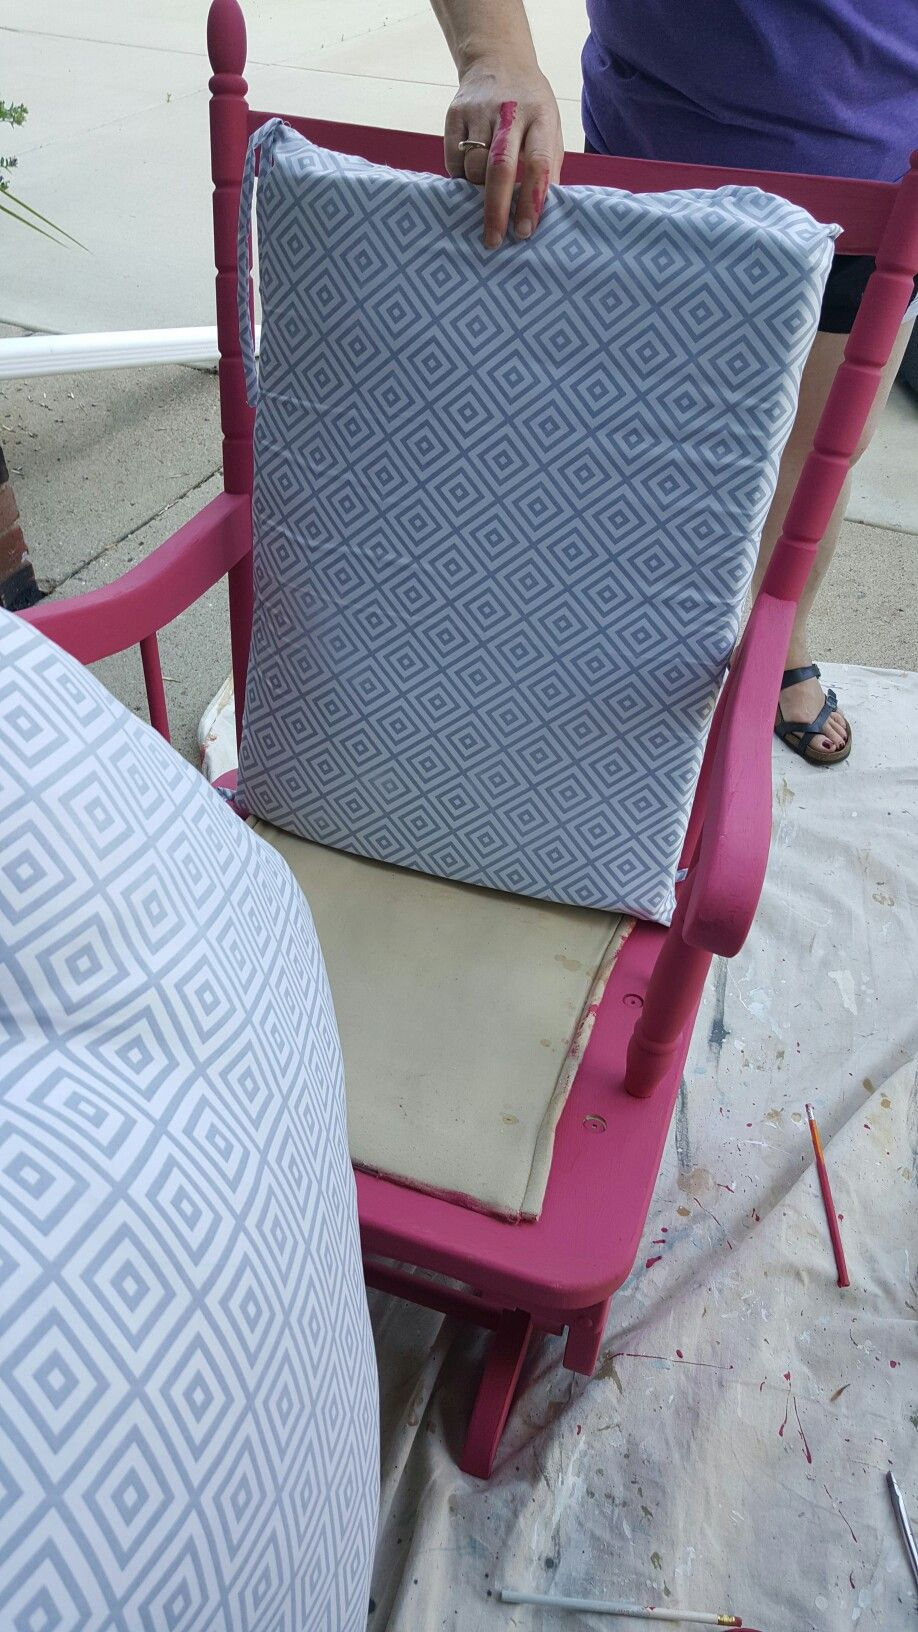 Swell Bought This Rocking Chair From The Thrift Store Used Chalk Gmtry Best Dining Table And Chair Ideas Images Gmtryco